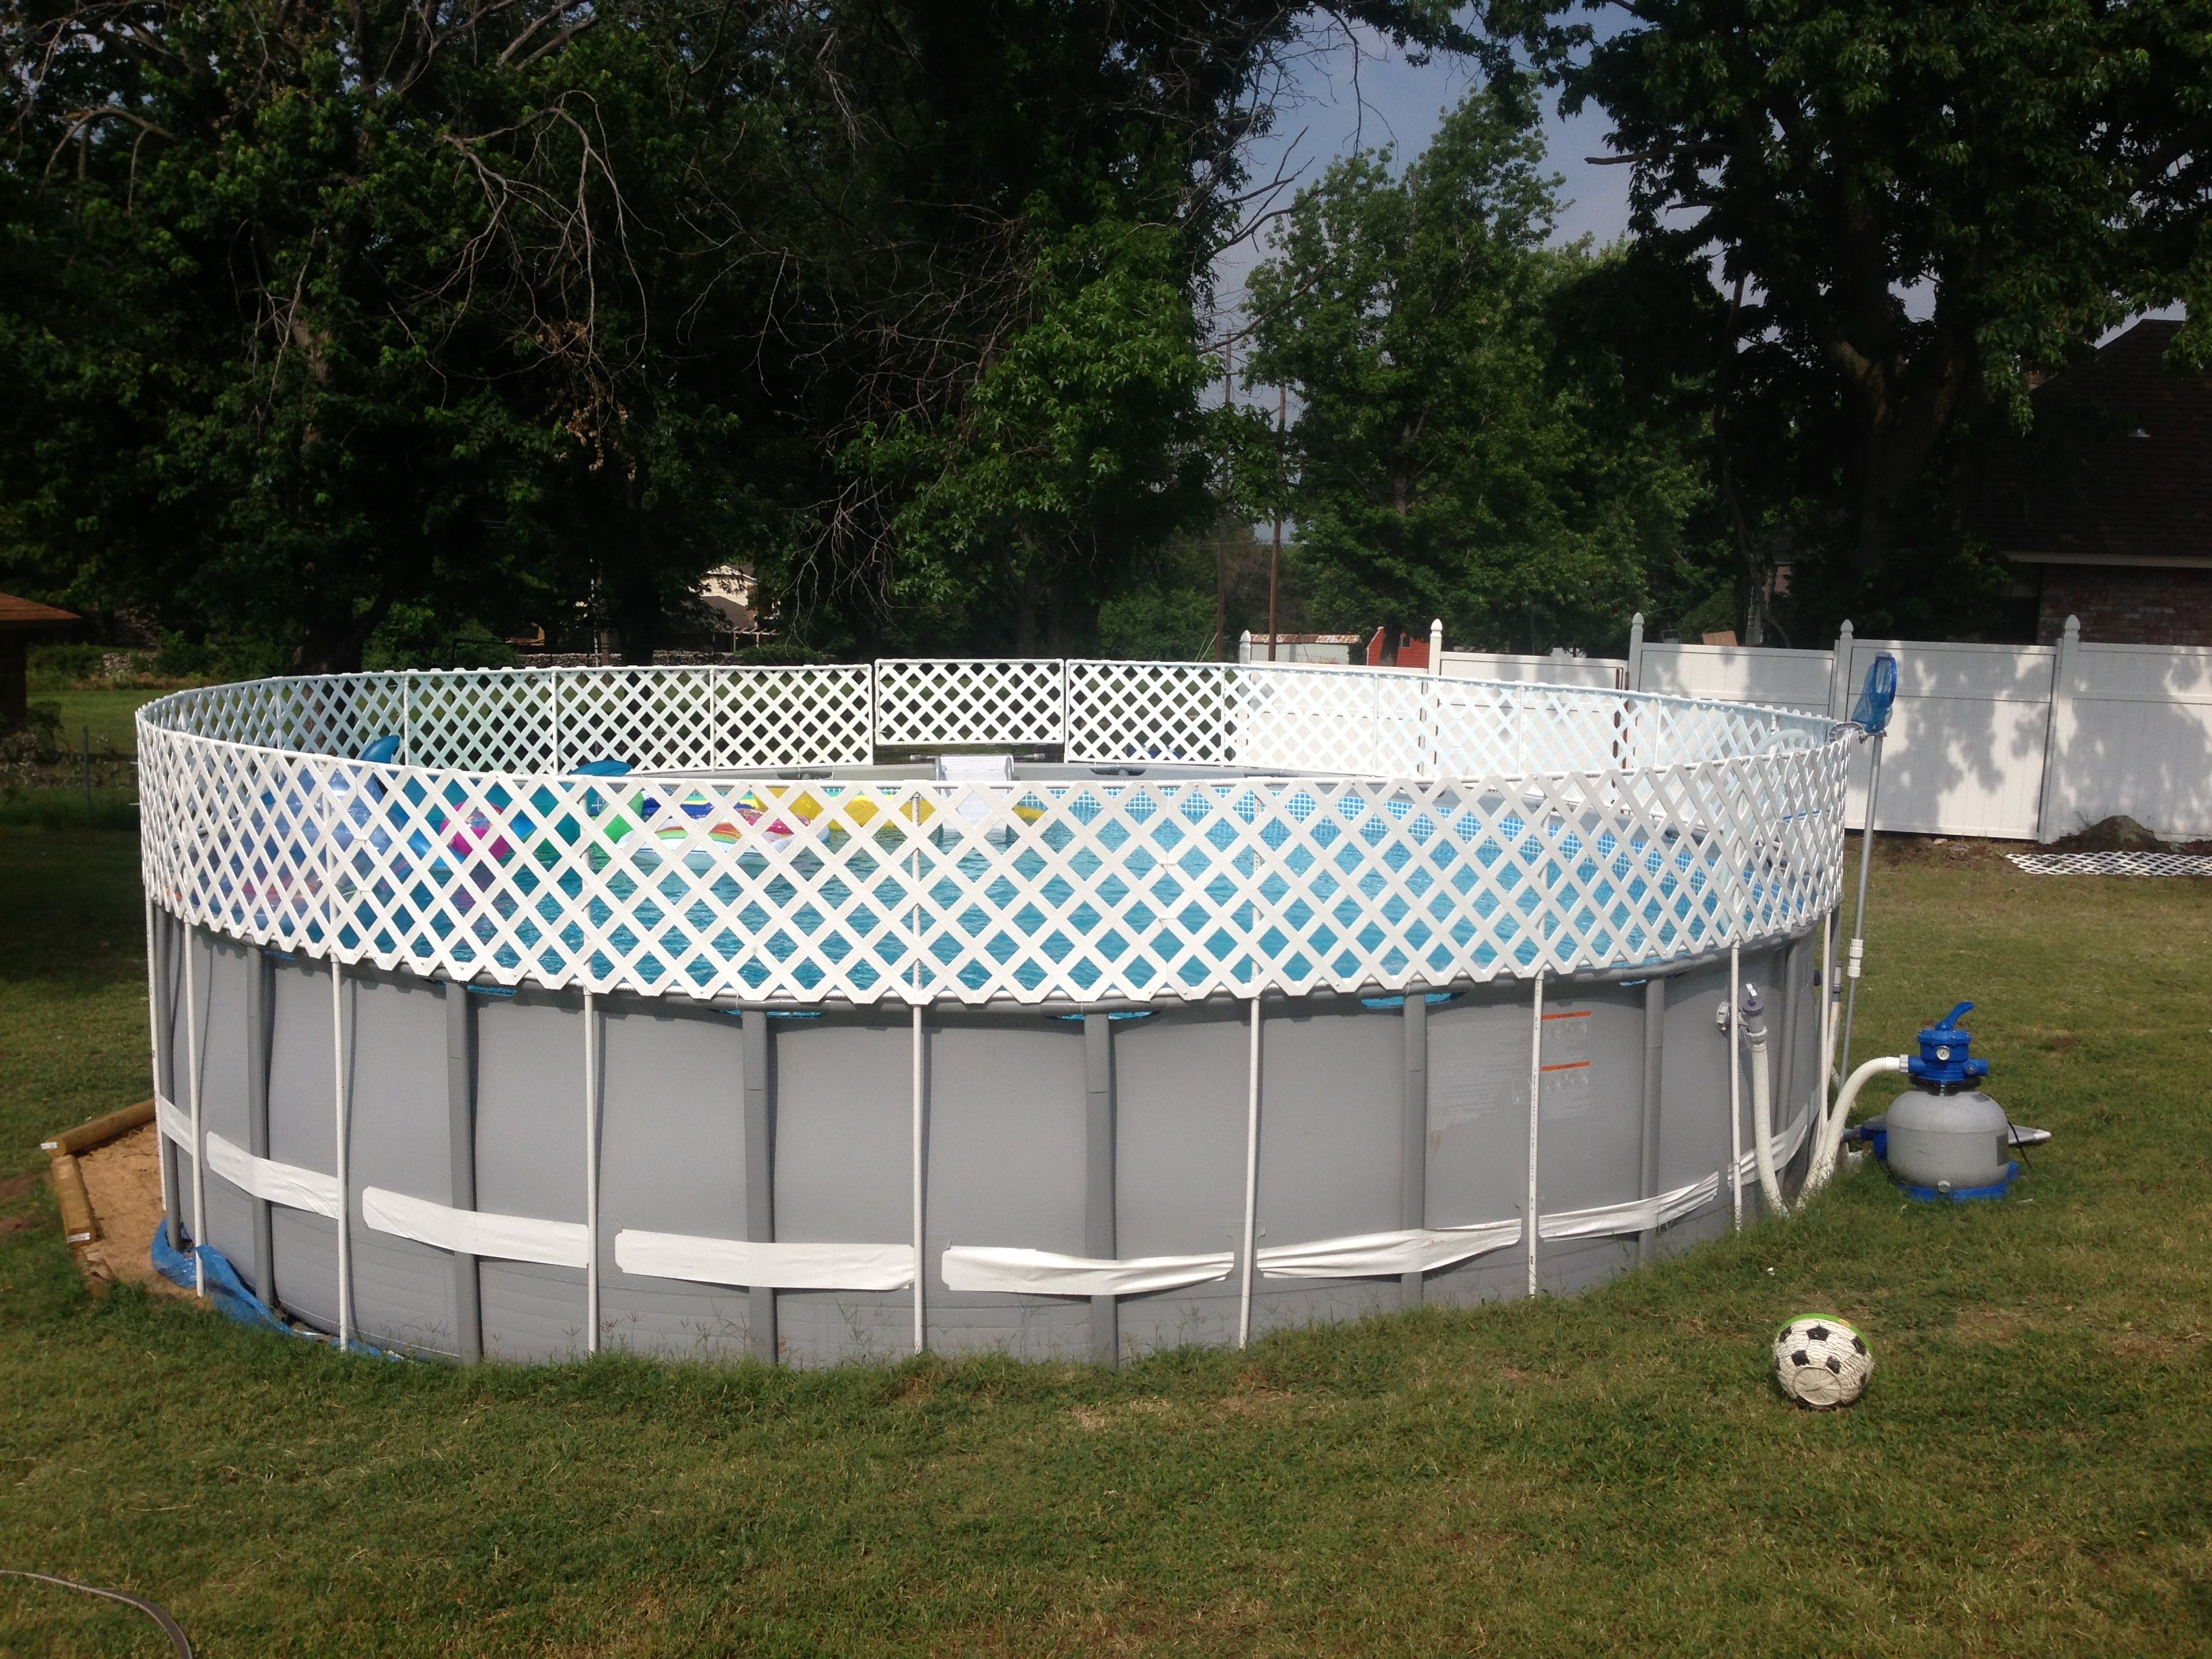 Above Ground Pool Fence above ground pool fence diy 1/2inch pvc pipe and white pvc lattice